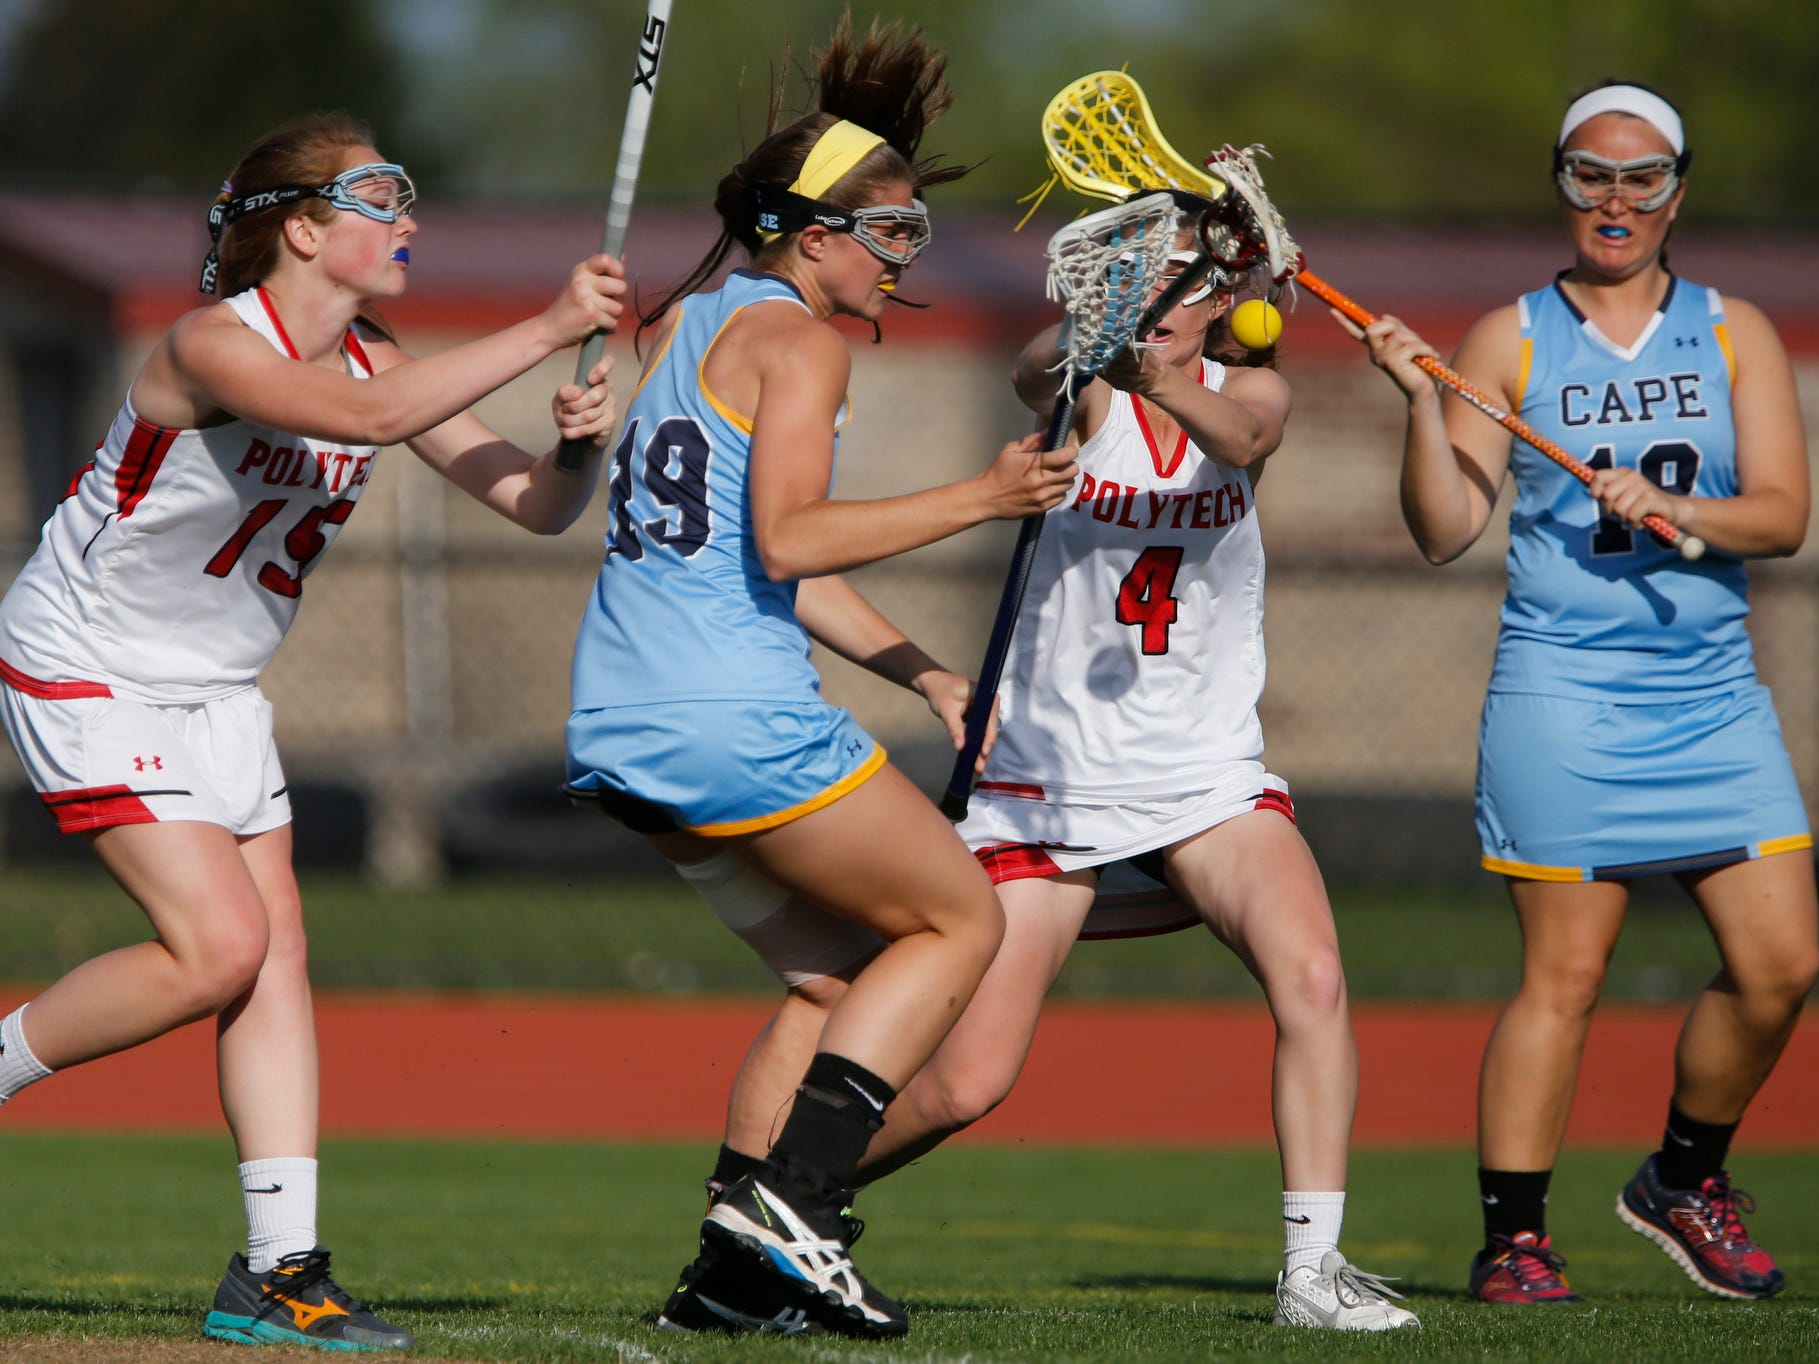 Cape Henlopen's Alison Palmer (19) tries to get through Polytech's Grace Stang (left) and Kaitlin Bergold as Cape's Jordan Brown looks on at right, during Cape Henlopen's 19-9 win at Polytech Tuesday.